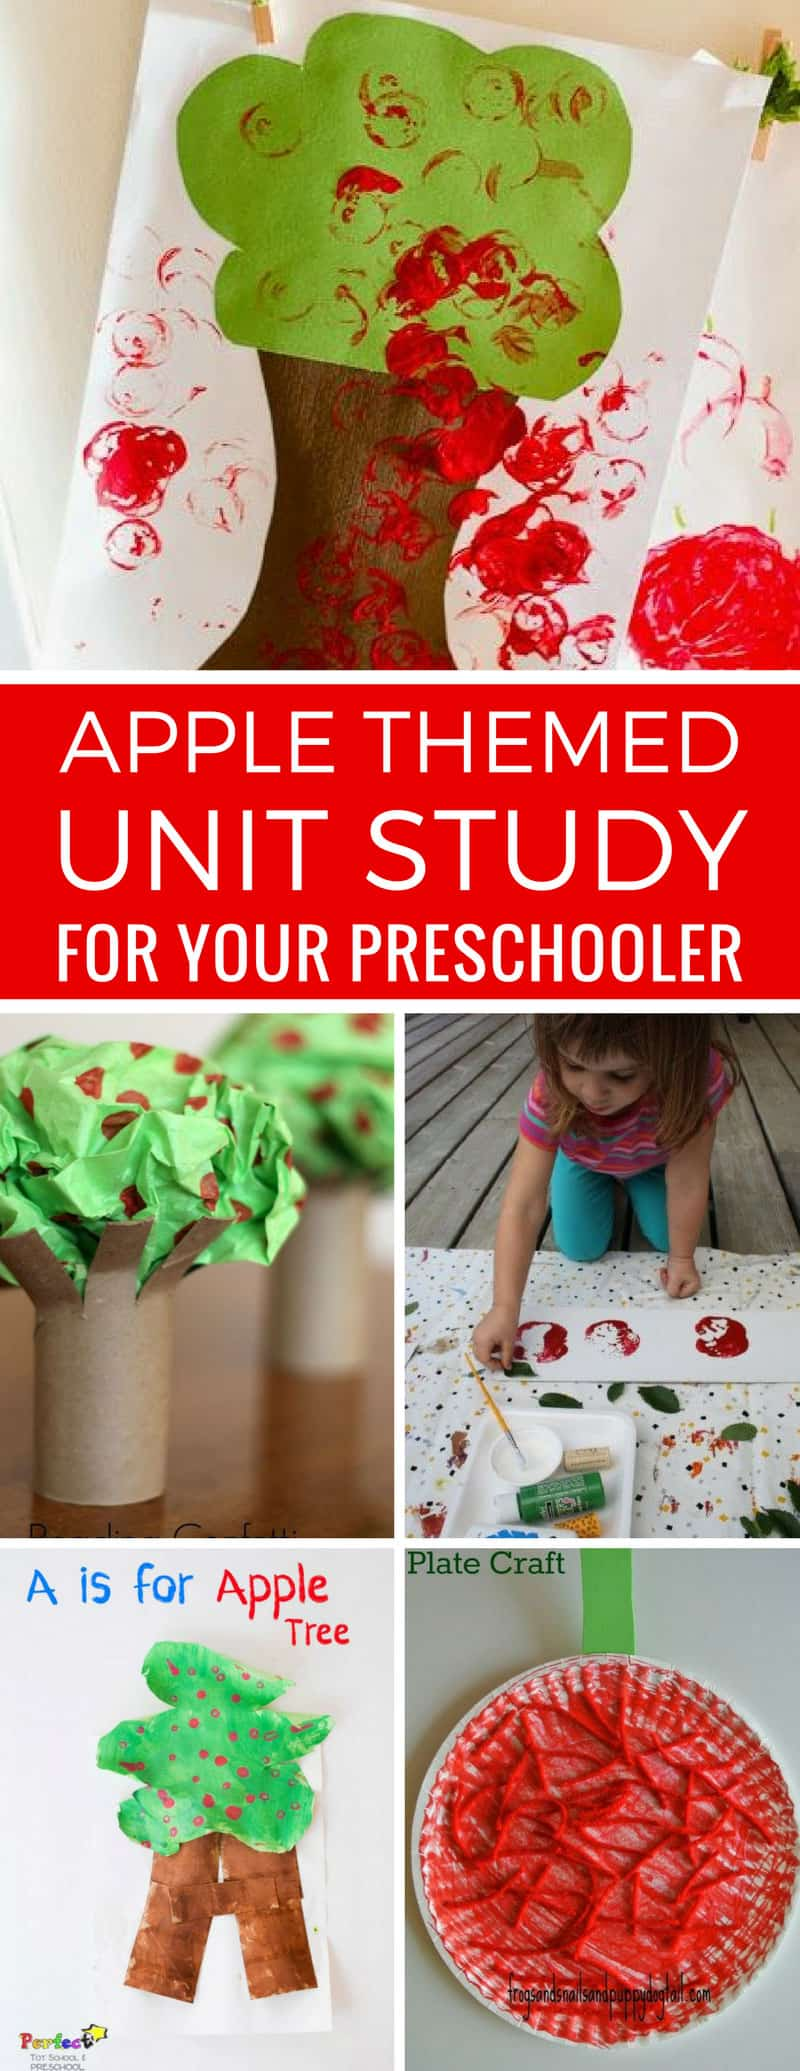 So many apple activities for preschoolers in this list - that's our Tot School curriculum sorted for a week or two! Thanks for sharing!